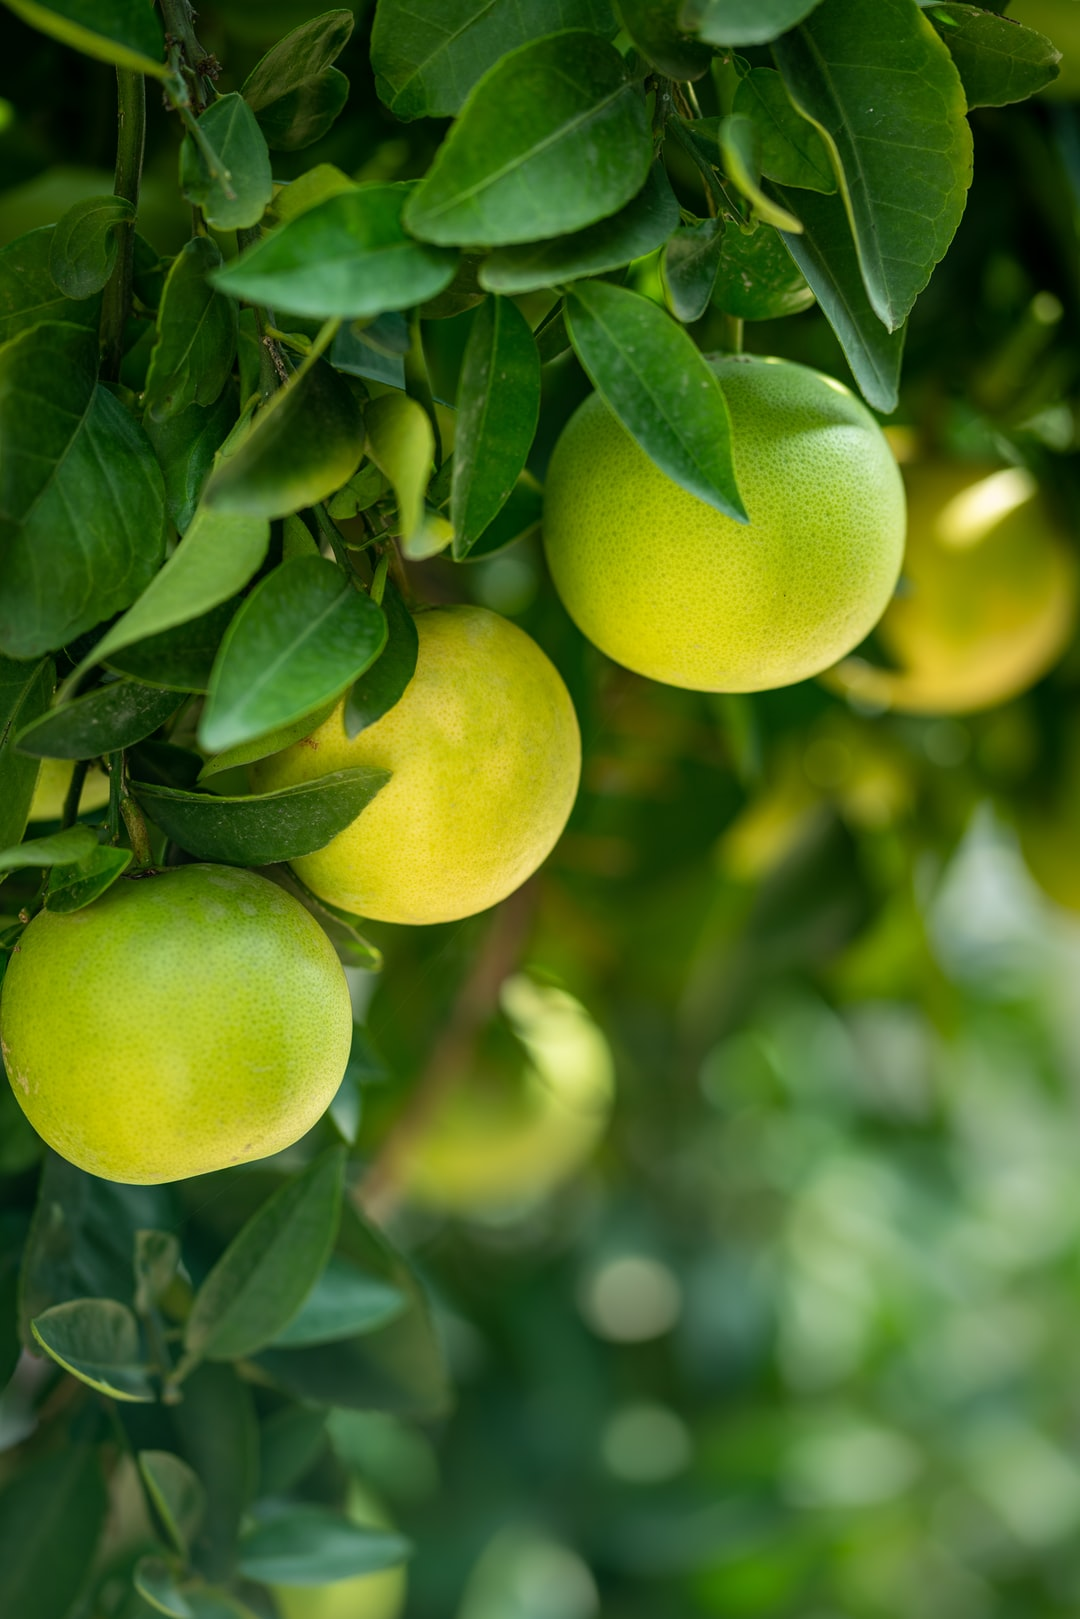 Close up shot of unripe green oranges hanging with tree